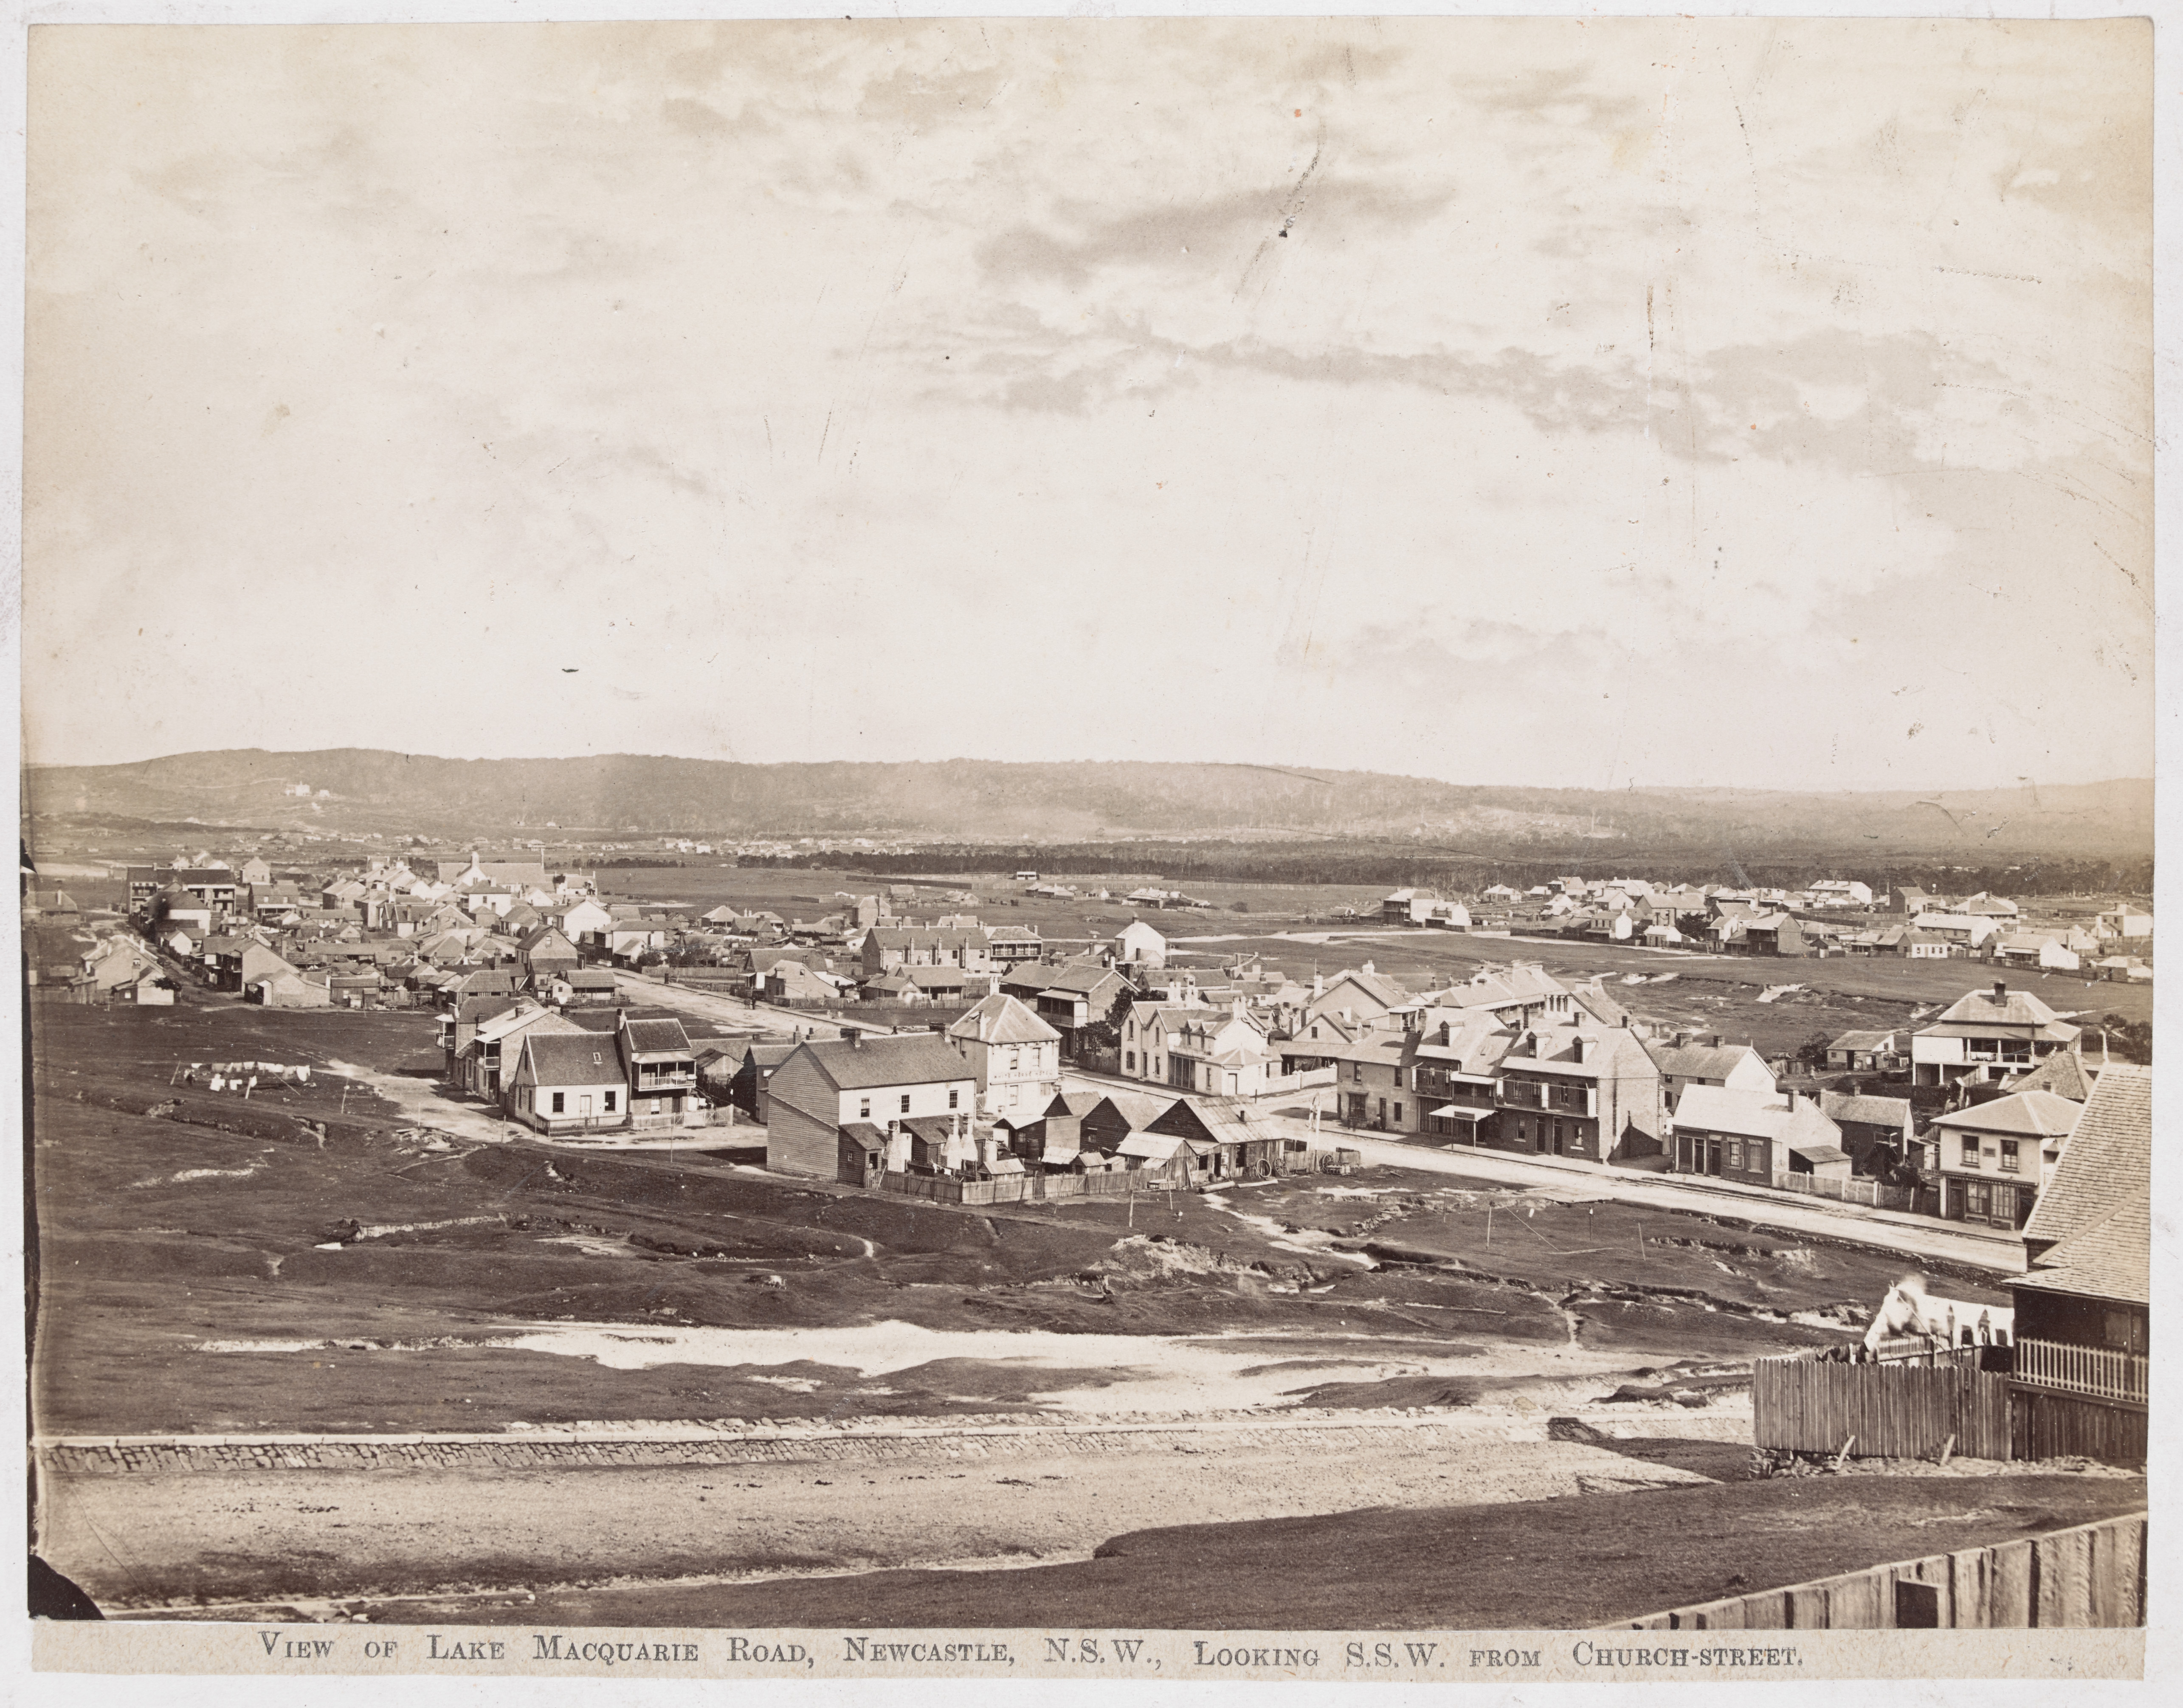 View of Lake Macquarie Road Looking S.S.W. from Church Street ( H141645 - Courtesy of the State Library of Victoria)